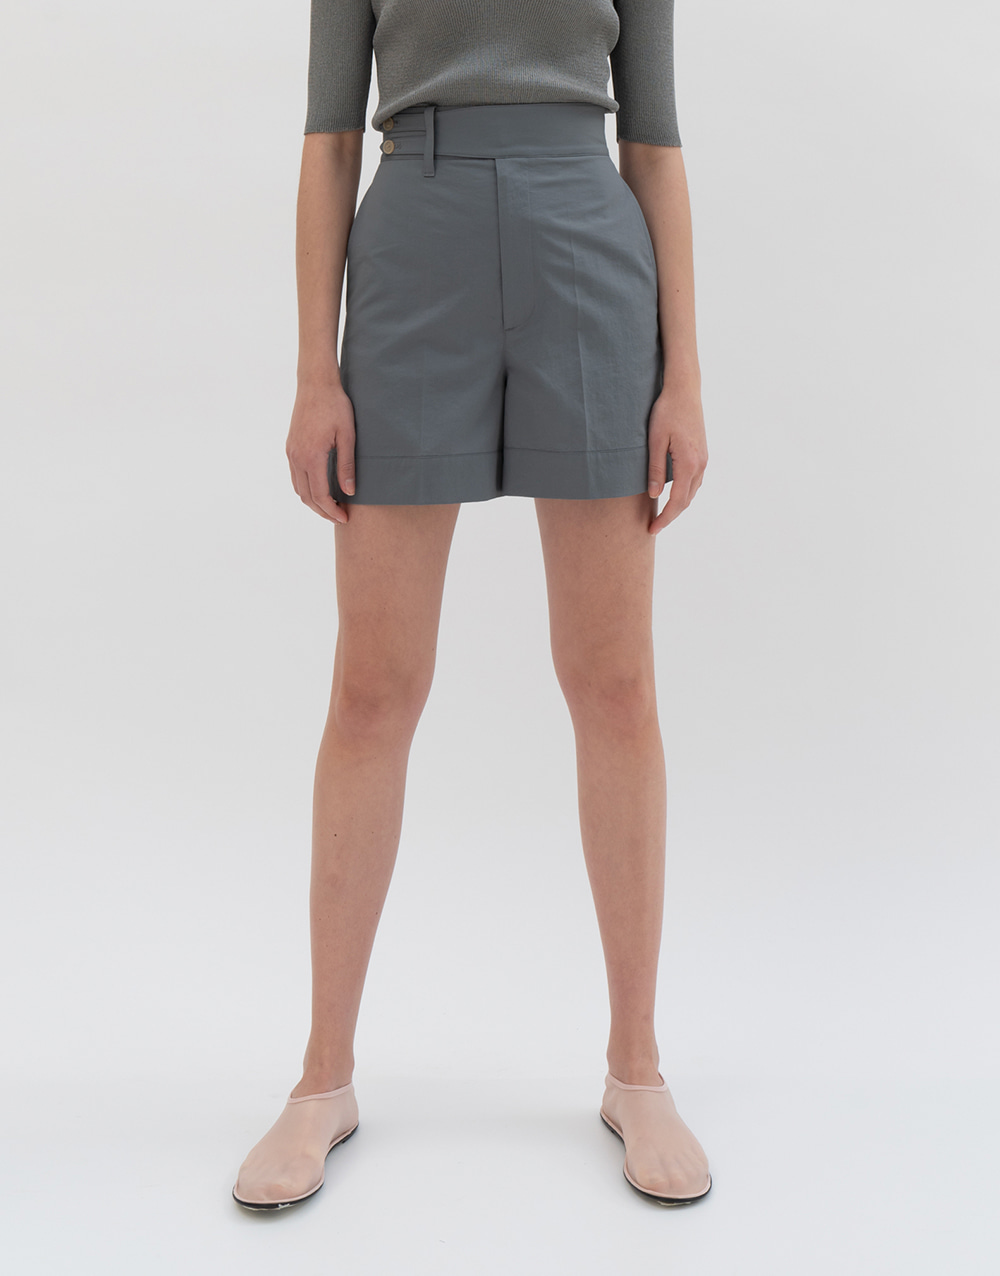 GBH APPAREL ADULT Belted High-waist Shorts GRAY